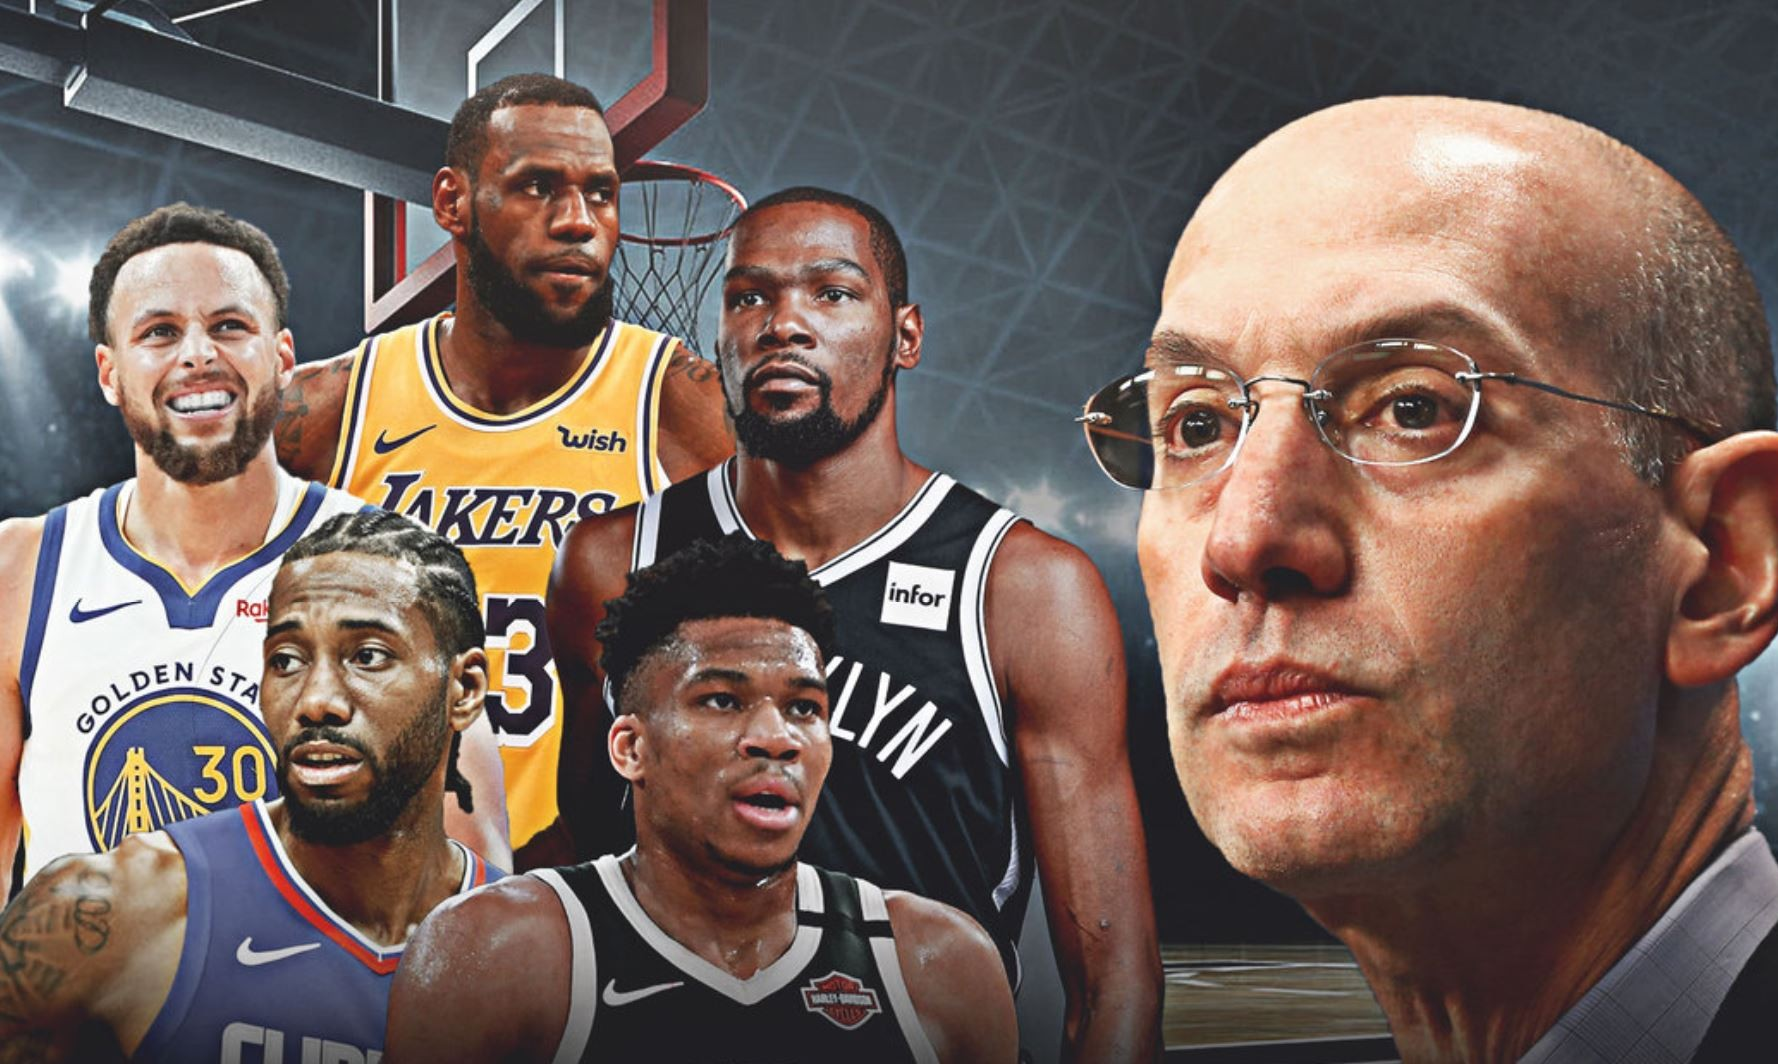 The Future of the NBA Is On the Line. Just What is Adam Silver Going to Do?